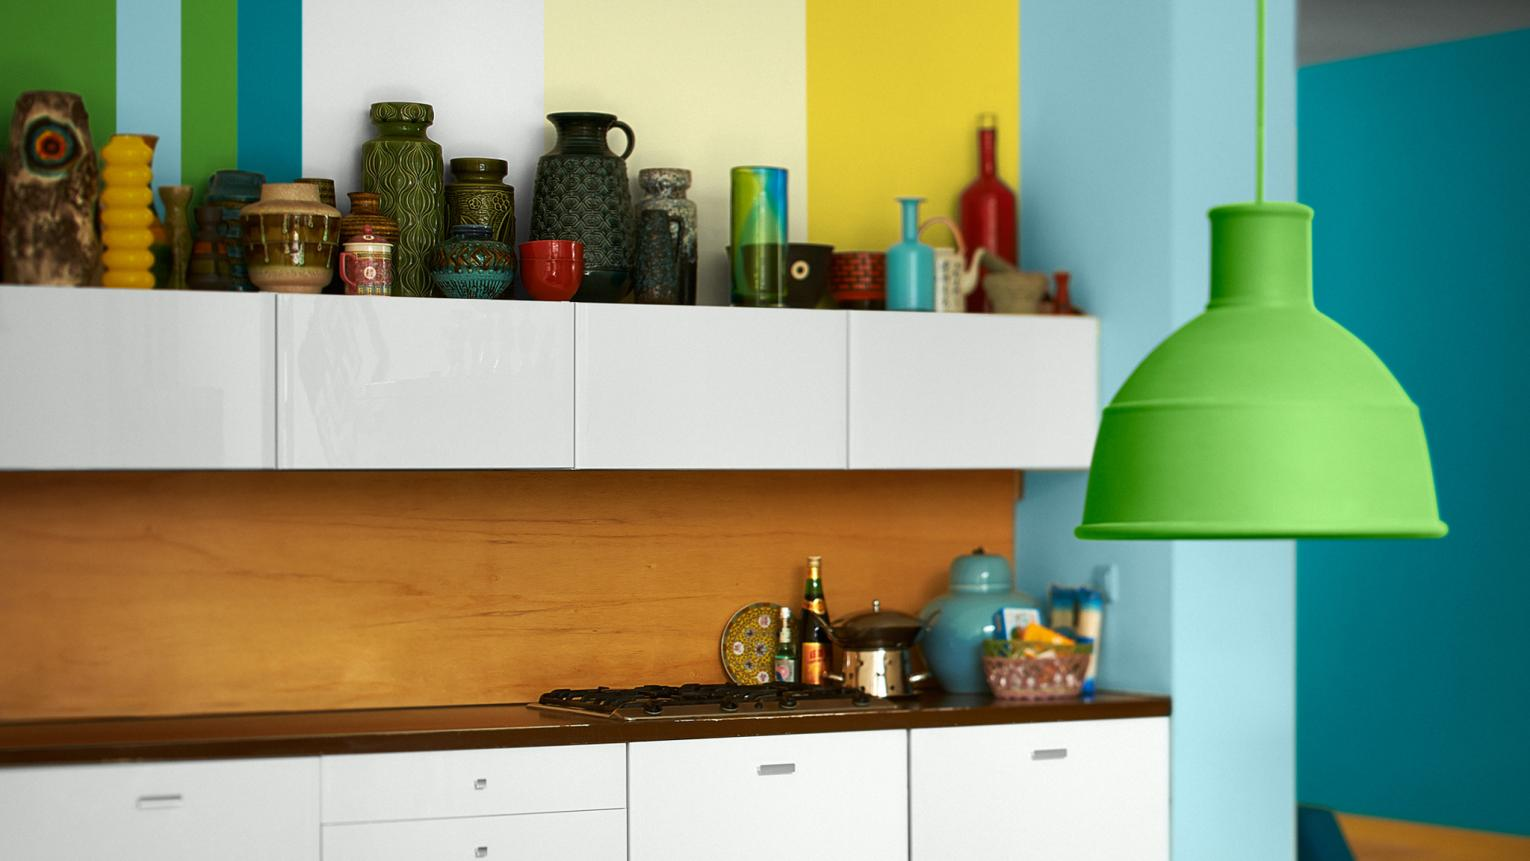 Bring colour and character to your home with contrasting colour combinations, clashing patterns and unexpected details.